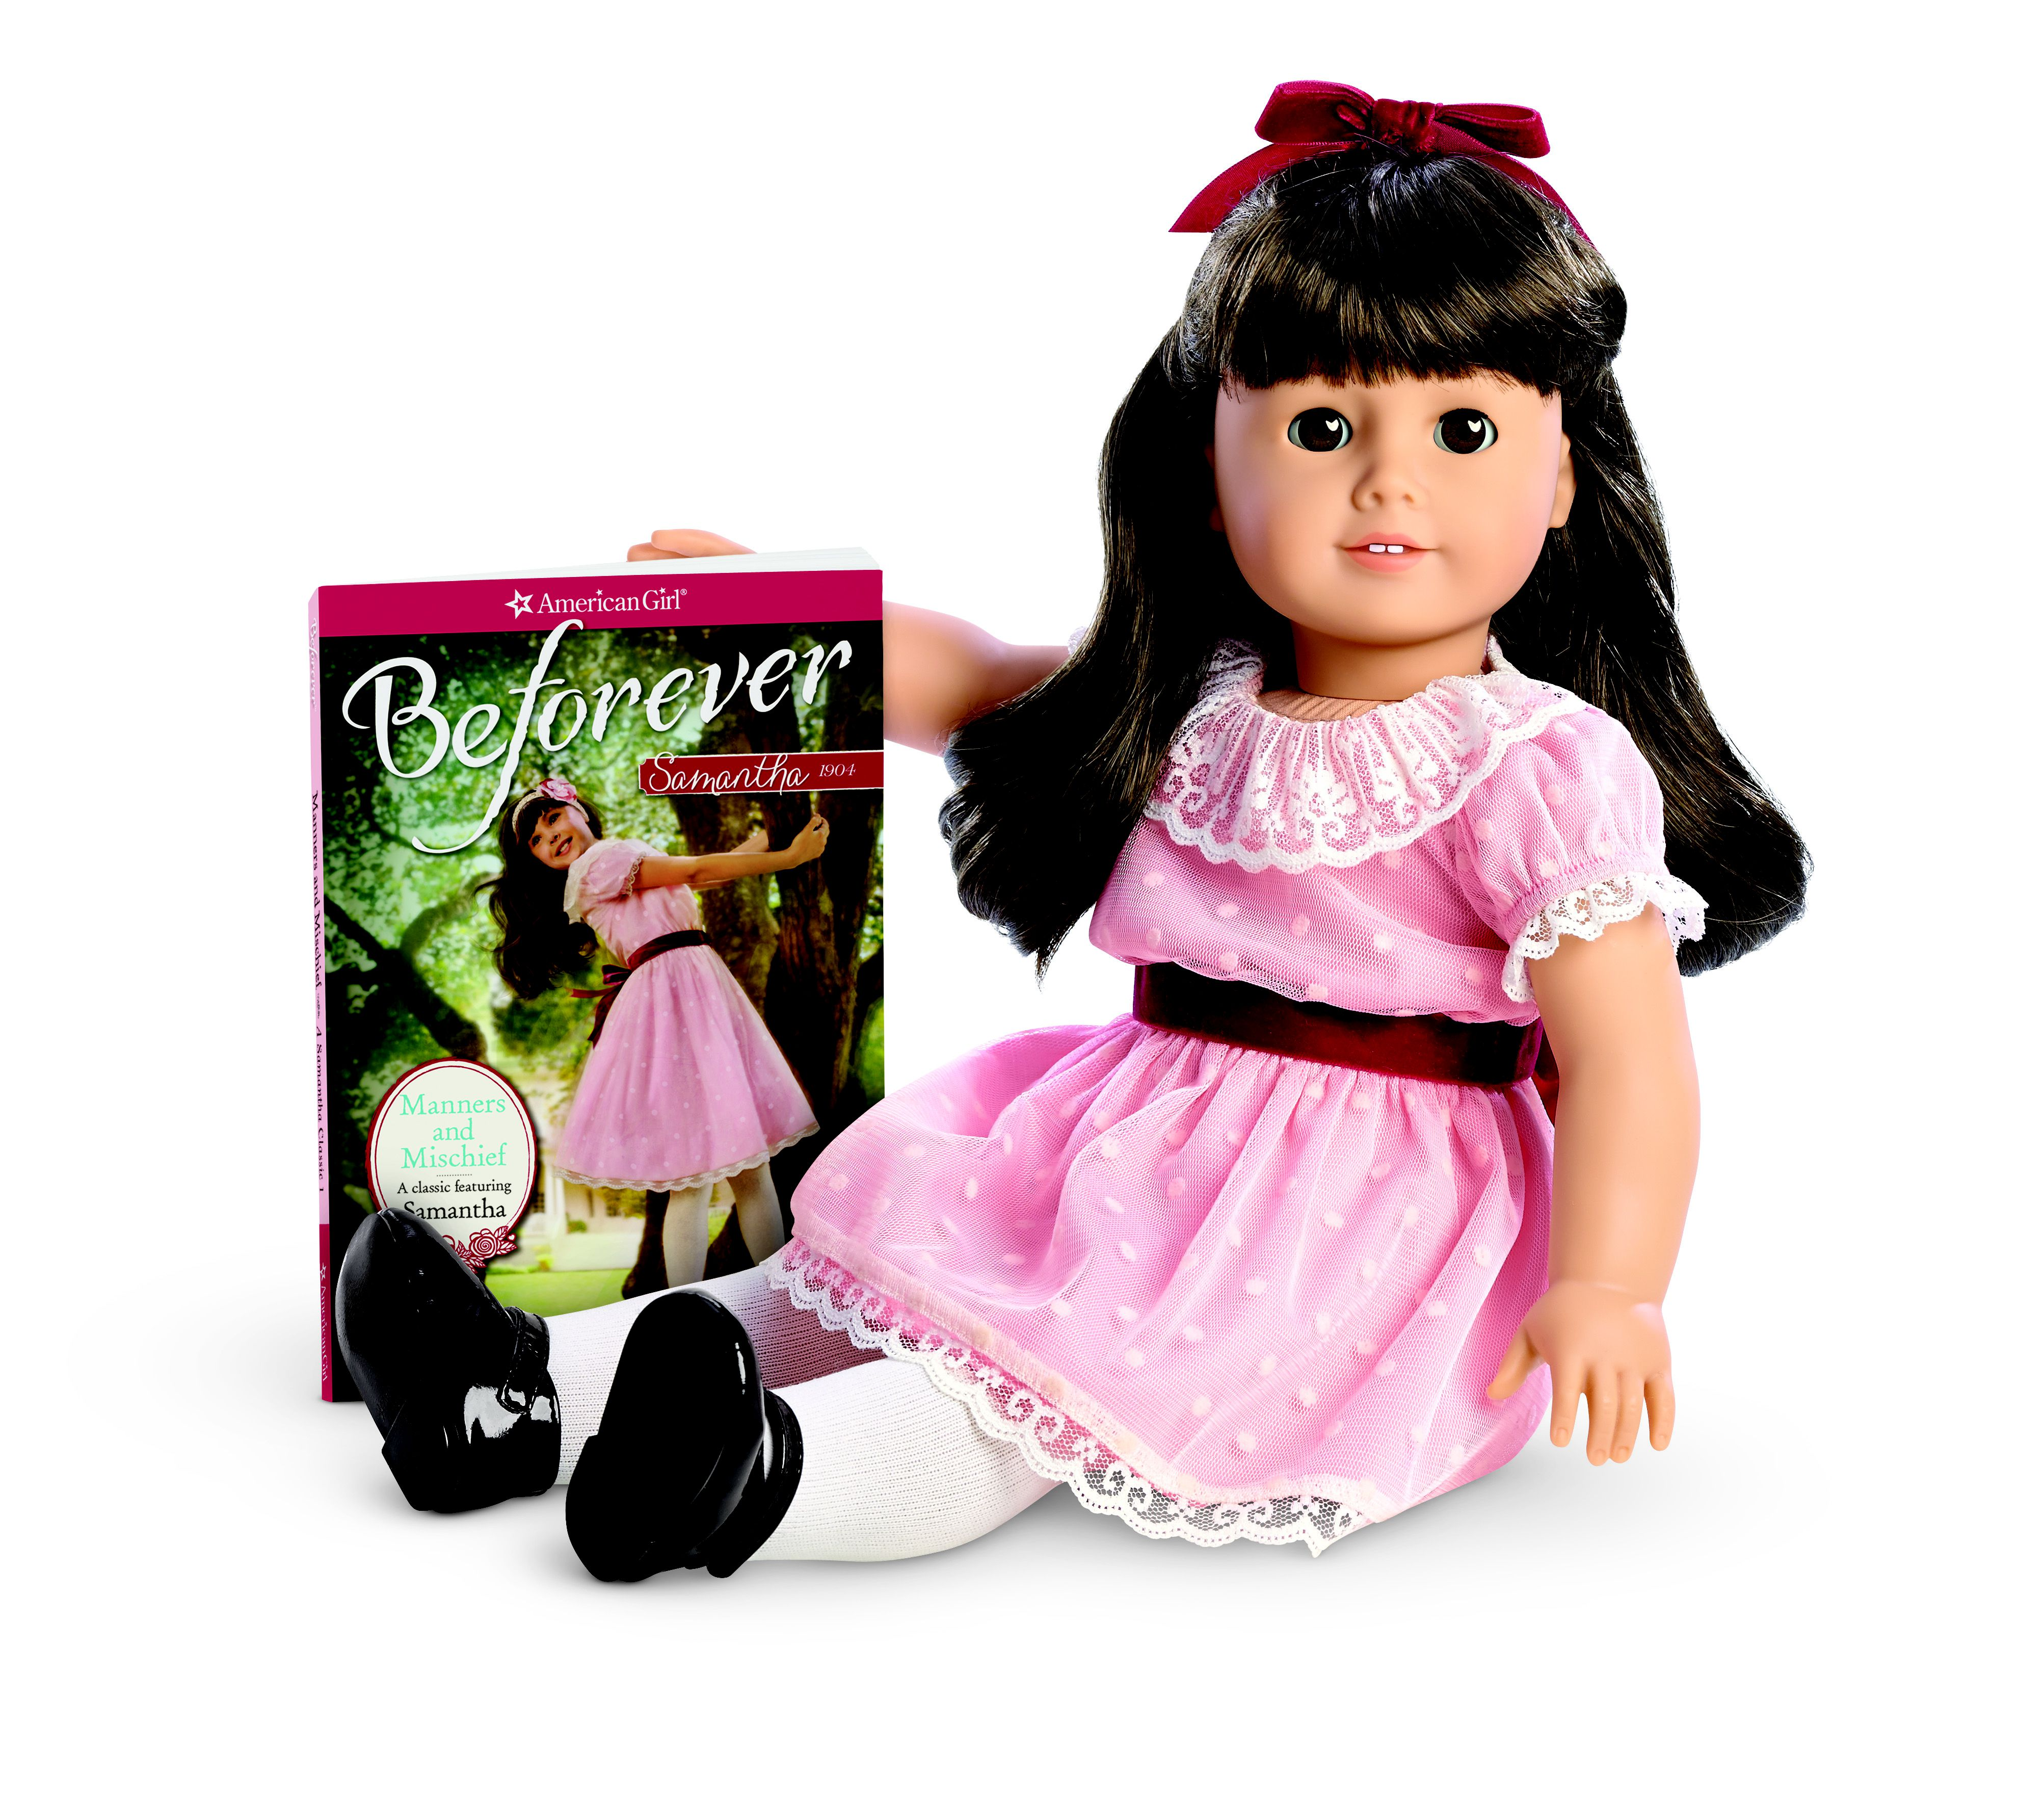 Who Are The American Girl BeForever Dolls